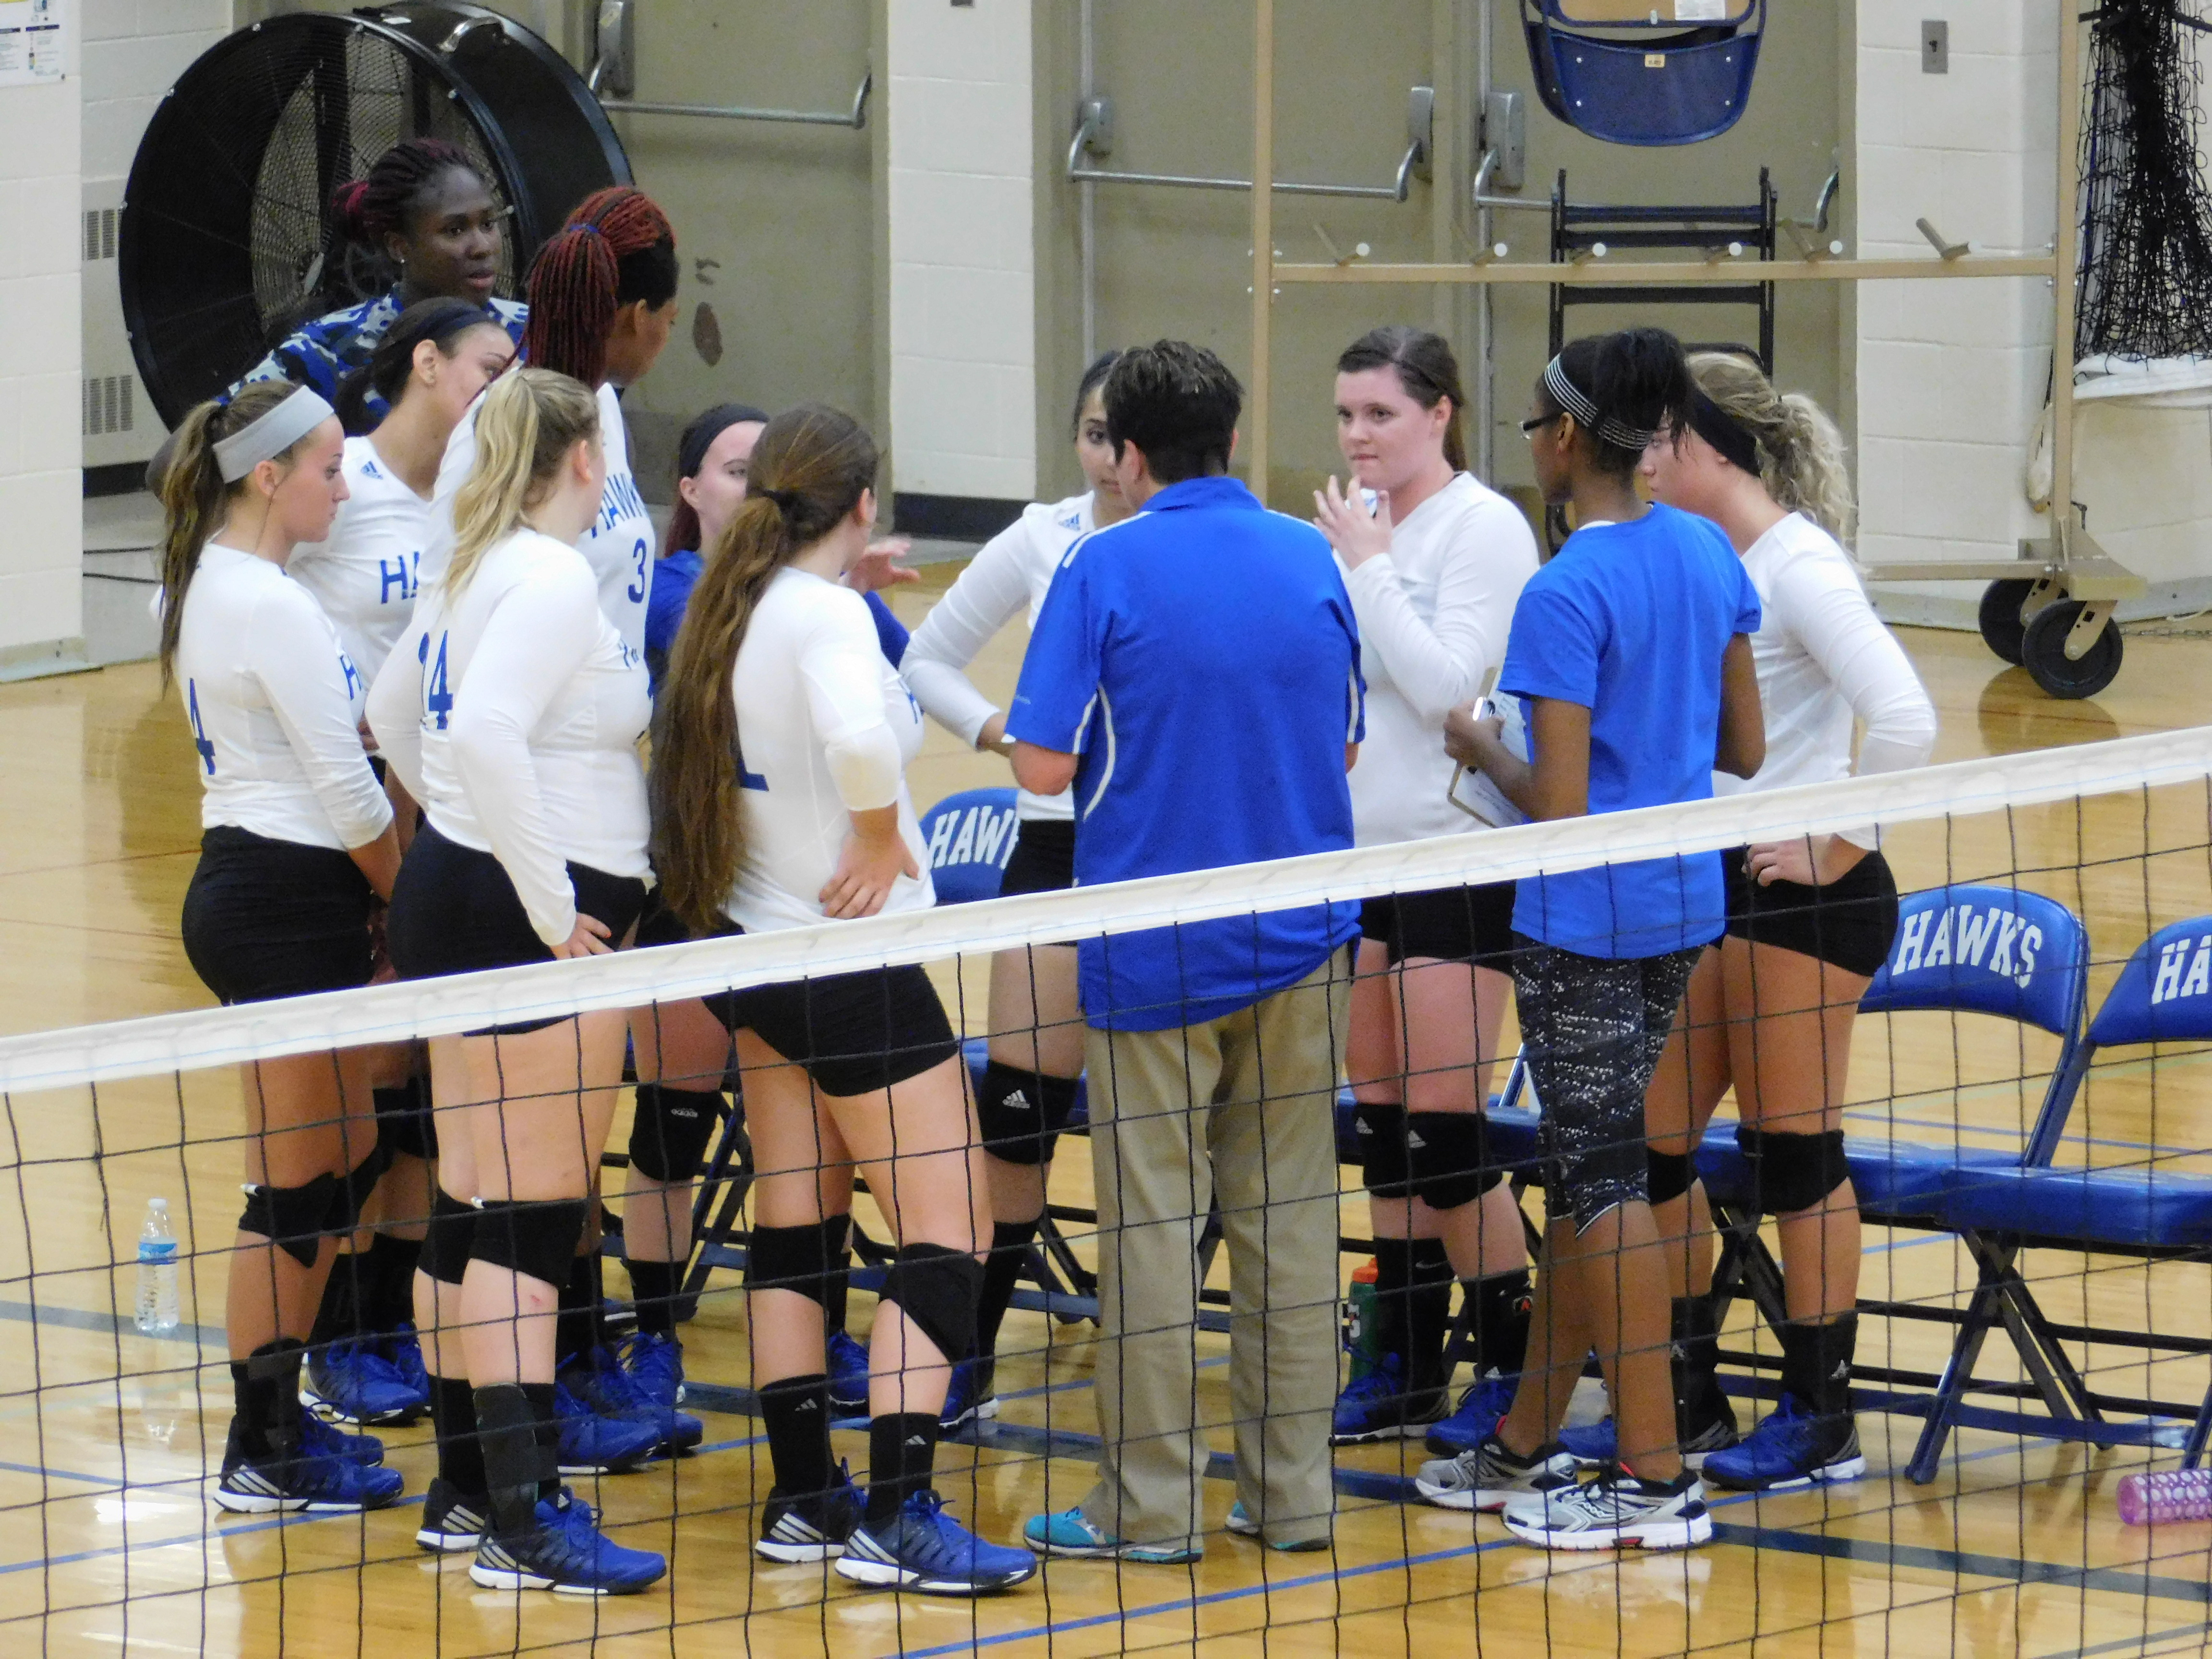 Hawks girls volleyball team huddled around the coach during a time out.